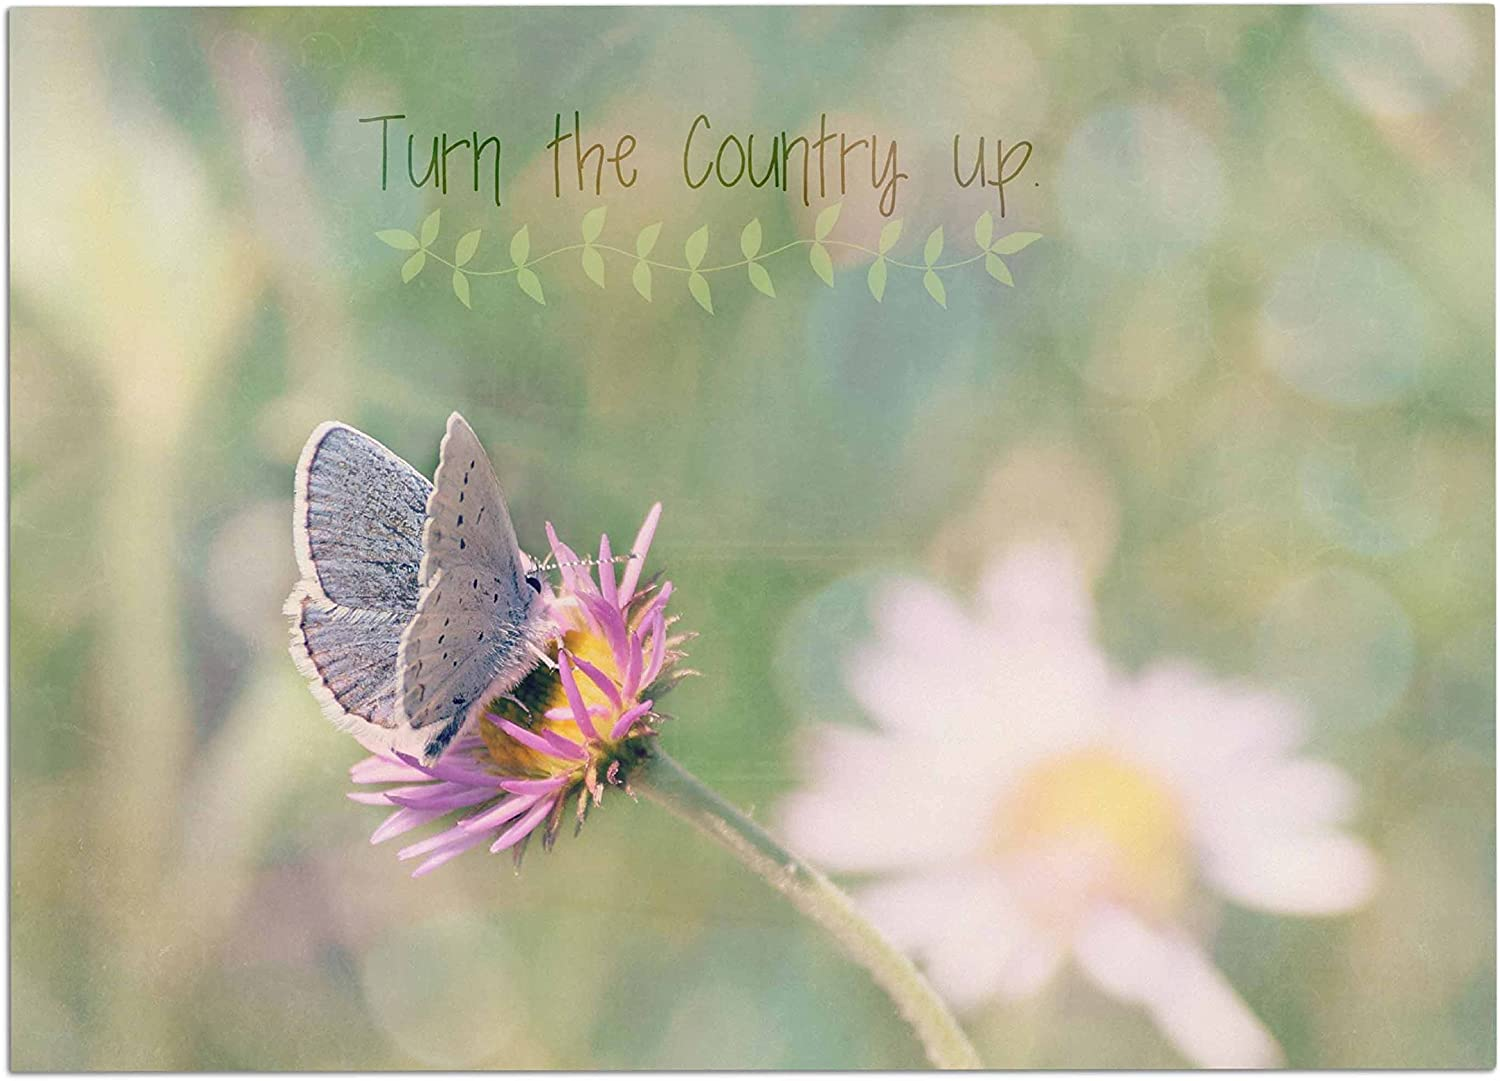 KESS InHouse RD1198ADM02 Robin Dickinson Turn The Country Up Green Typography Dog Place Mat, 24  x 15